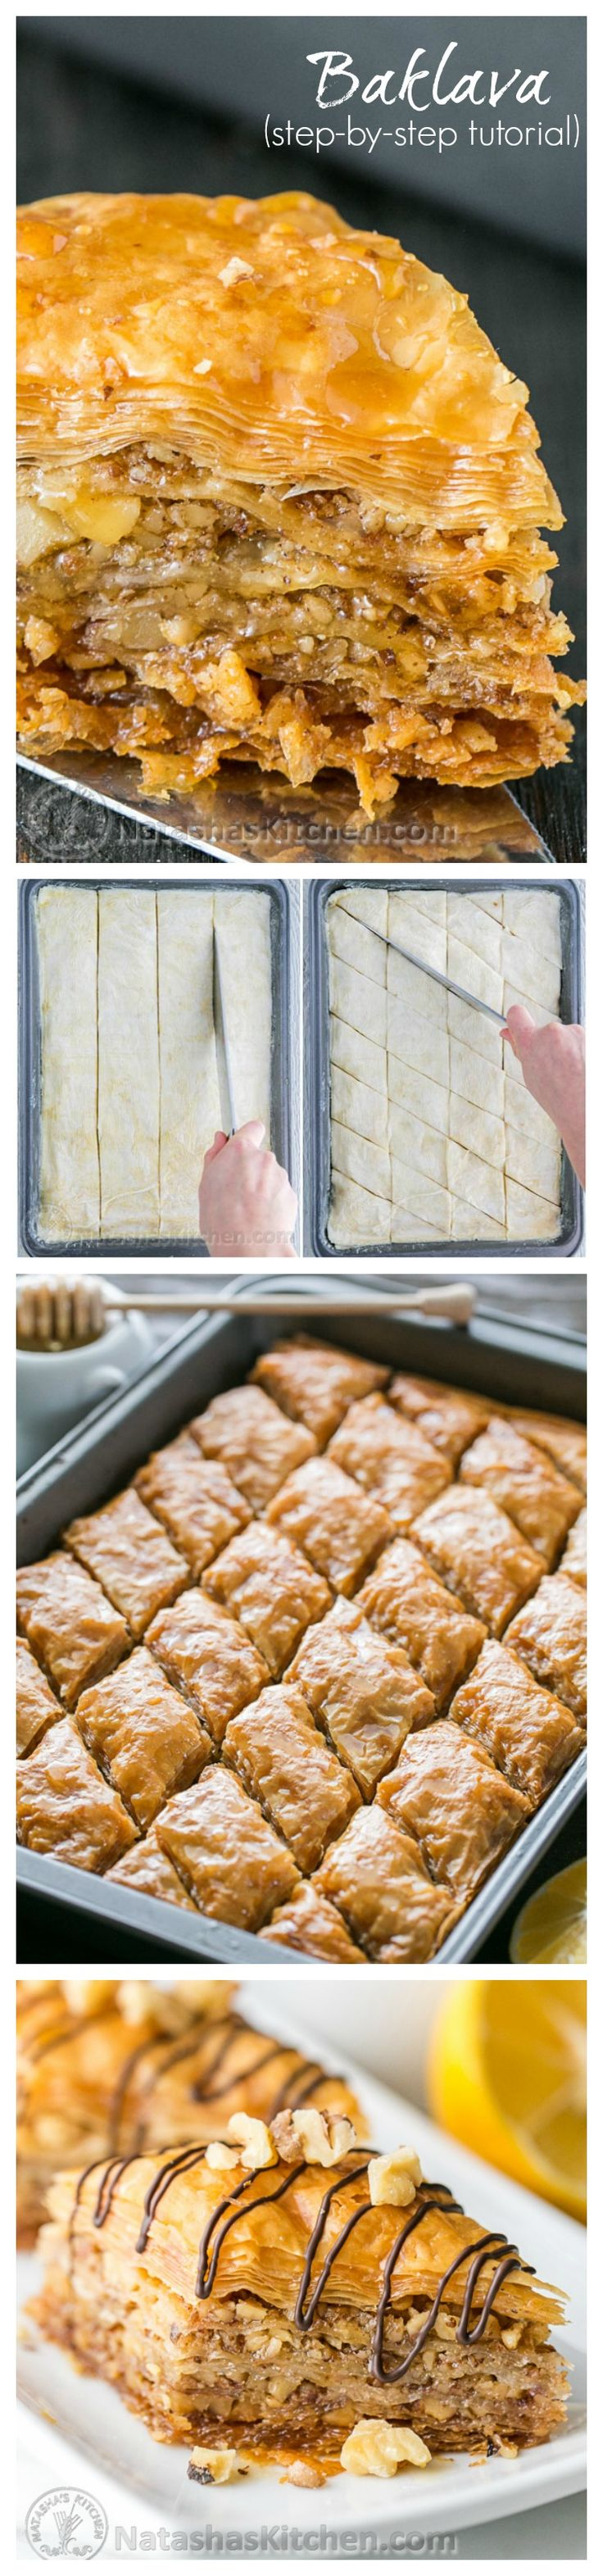 Baklava - This baklava is flaky, crisp, tender and I love that it's not overly sweet. No store-bought baklava can touch this!